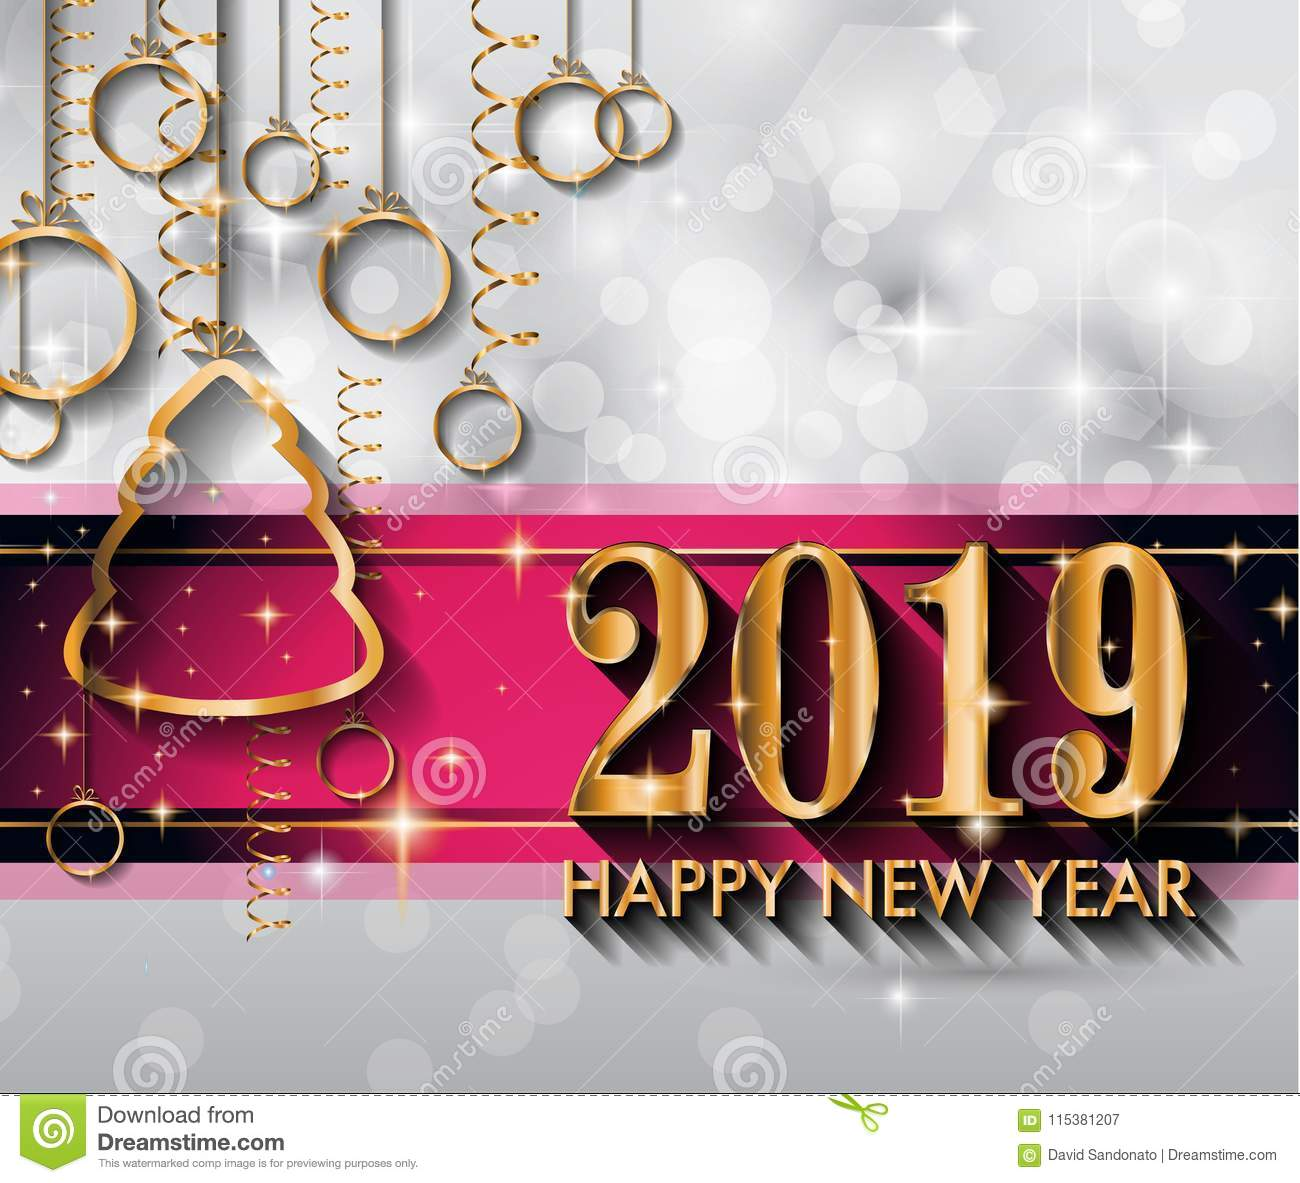 2019 happy new year background for your seasonal flyers and gree